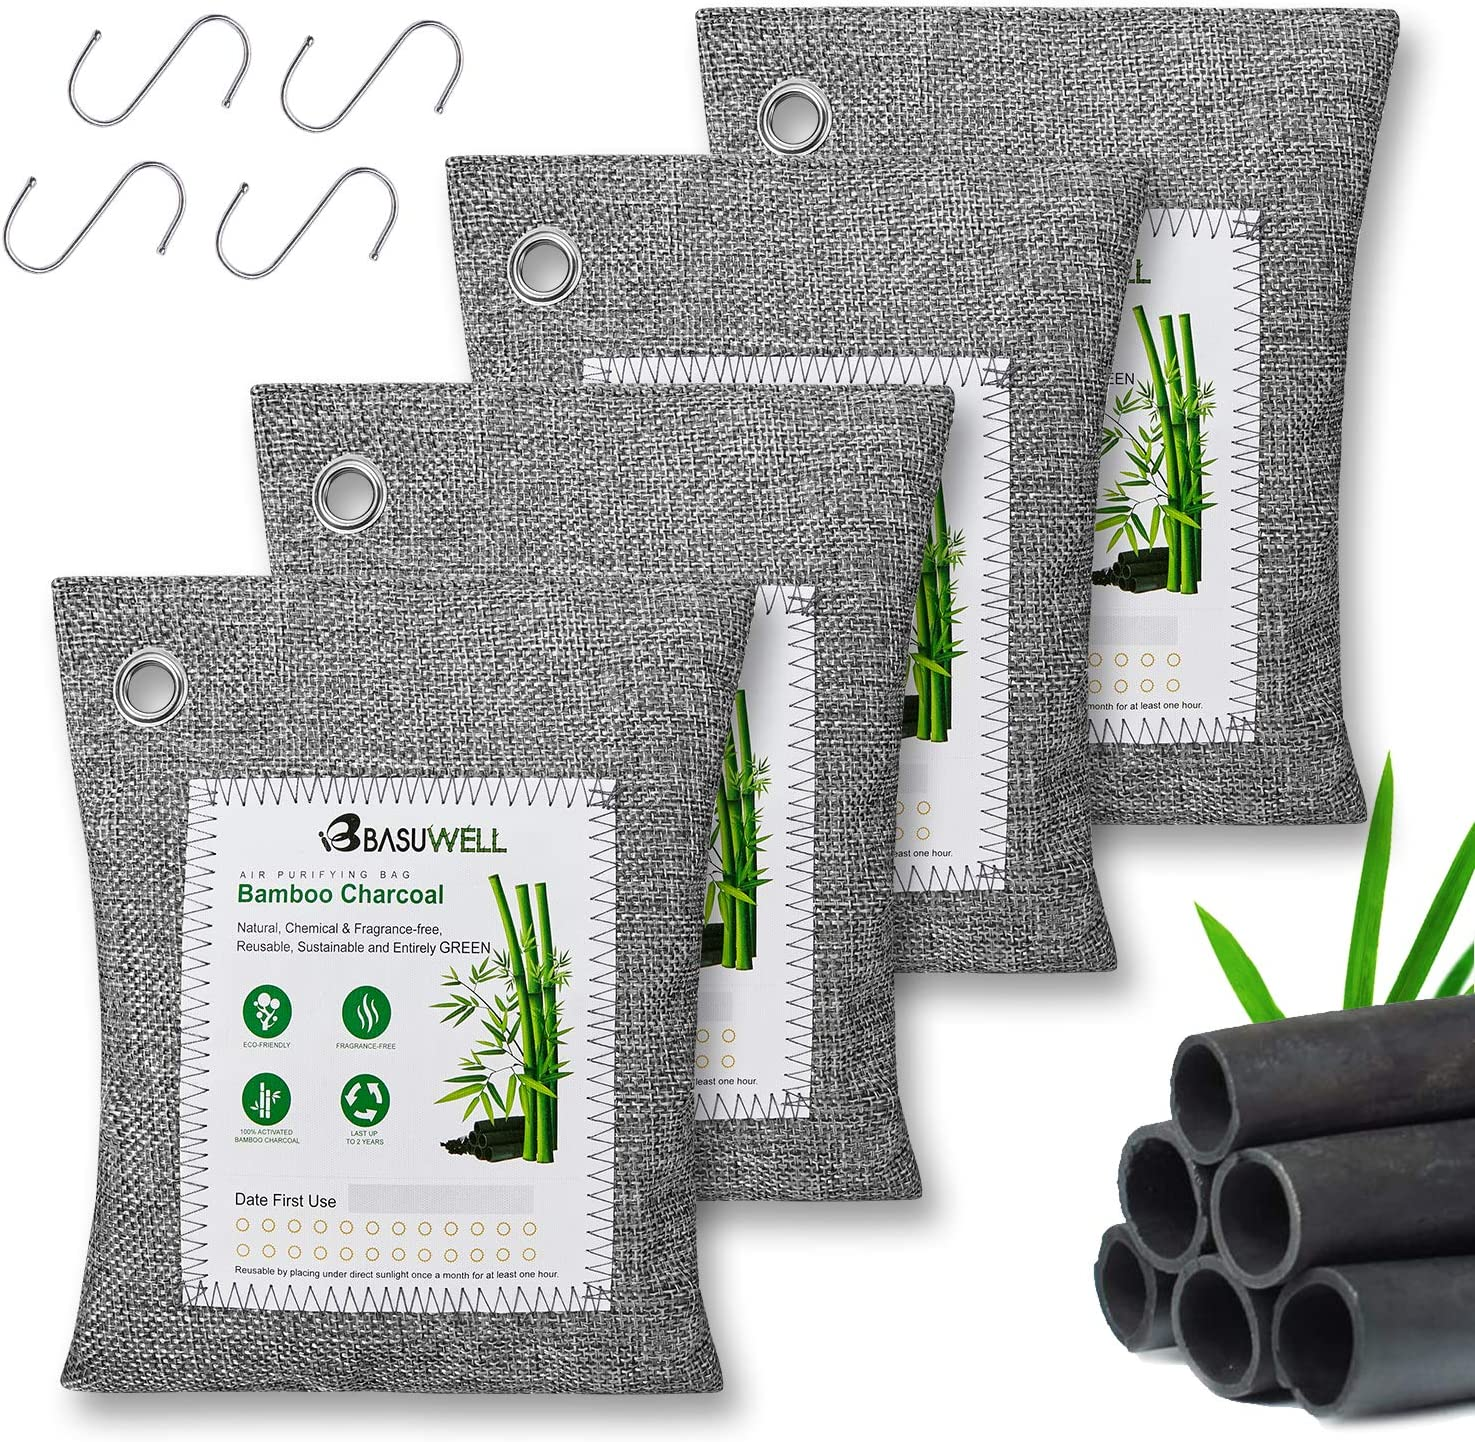 Bamboo Charcoal Air Purifying Bags 4-Pack with 4 Hooks, Naturally Freshen Air with Powerful Activated Charcoal Bags Odor Absorber, Kids and Pets Friendly Natural Charcoal Bags, 4x200g